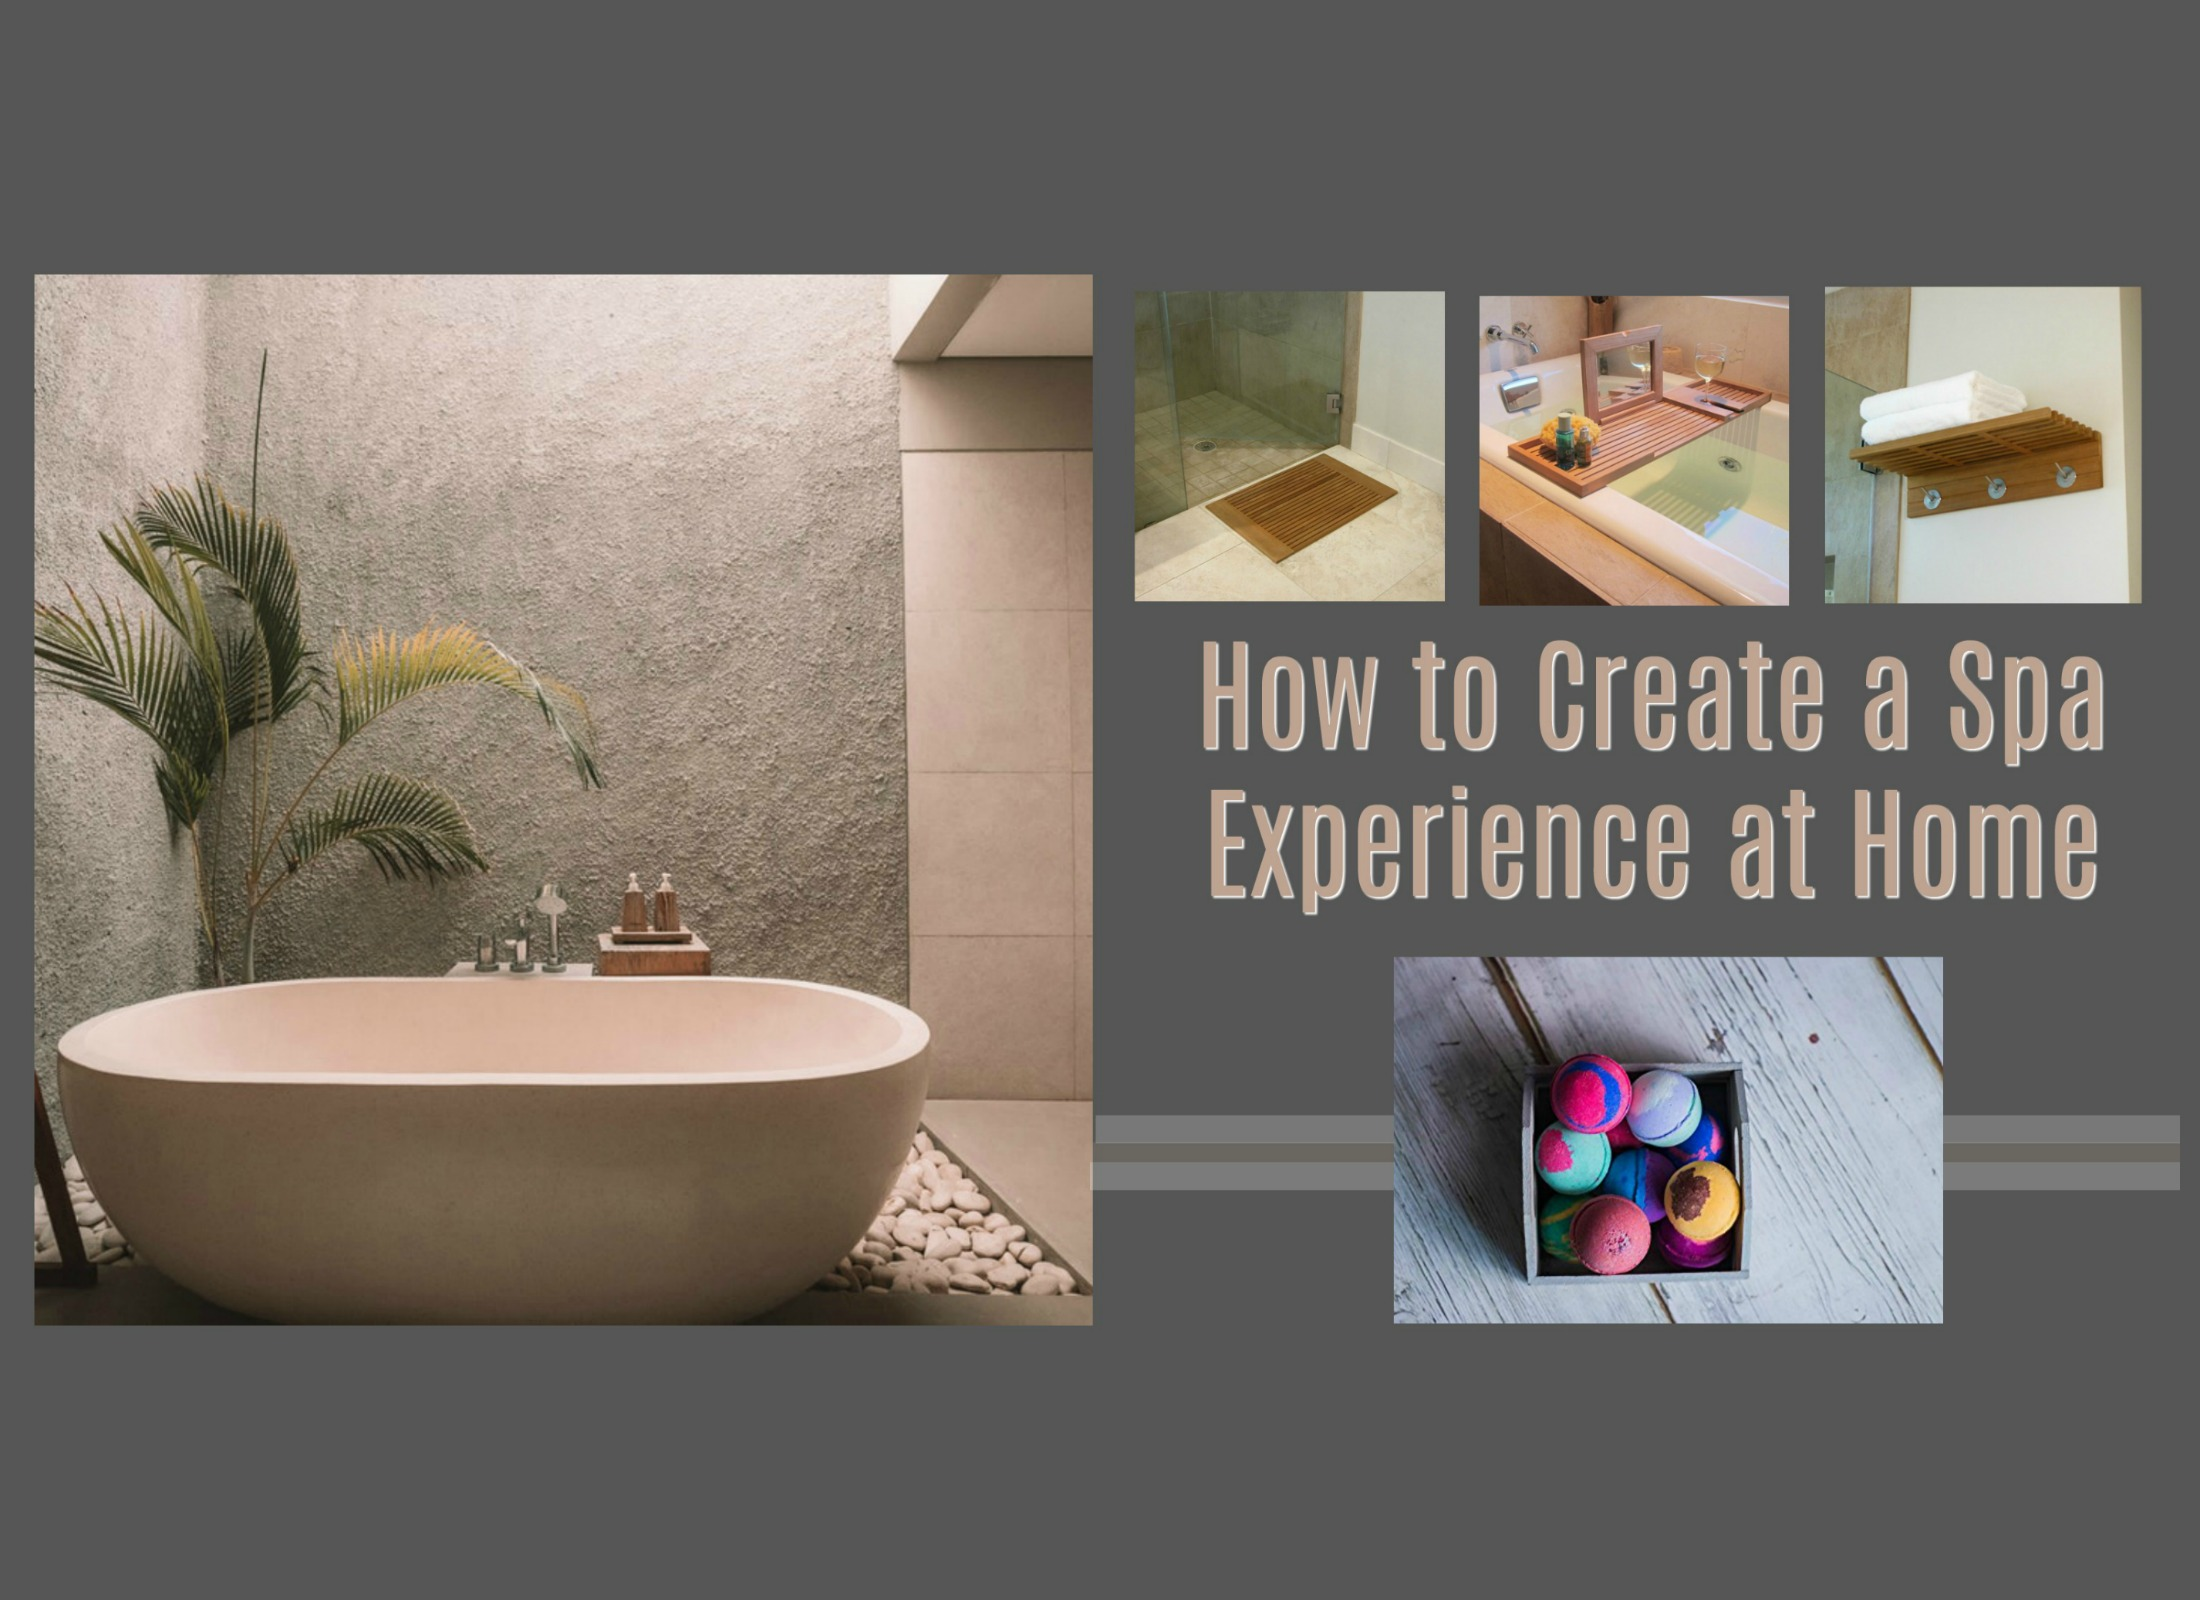 How to Create a Spa Experience at Home